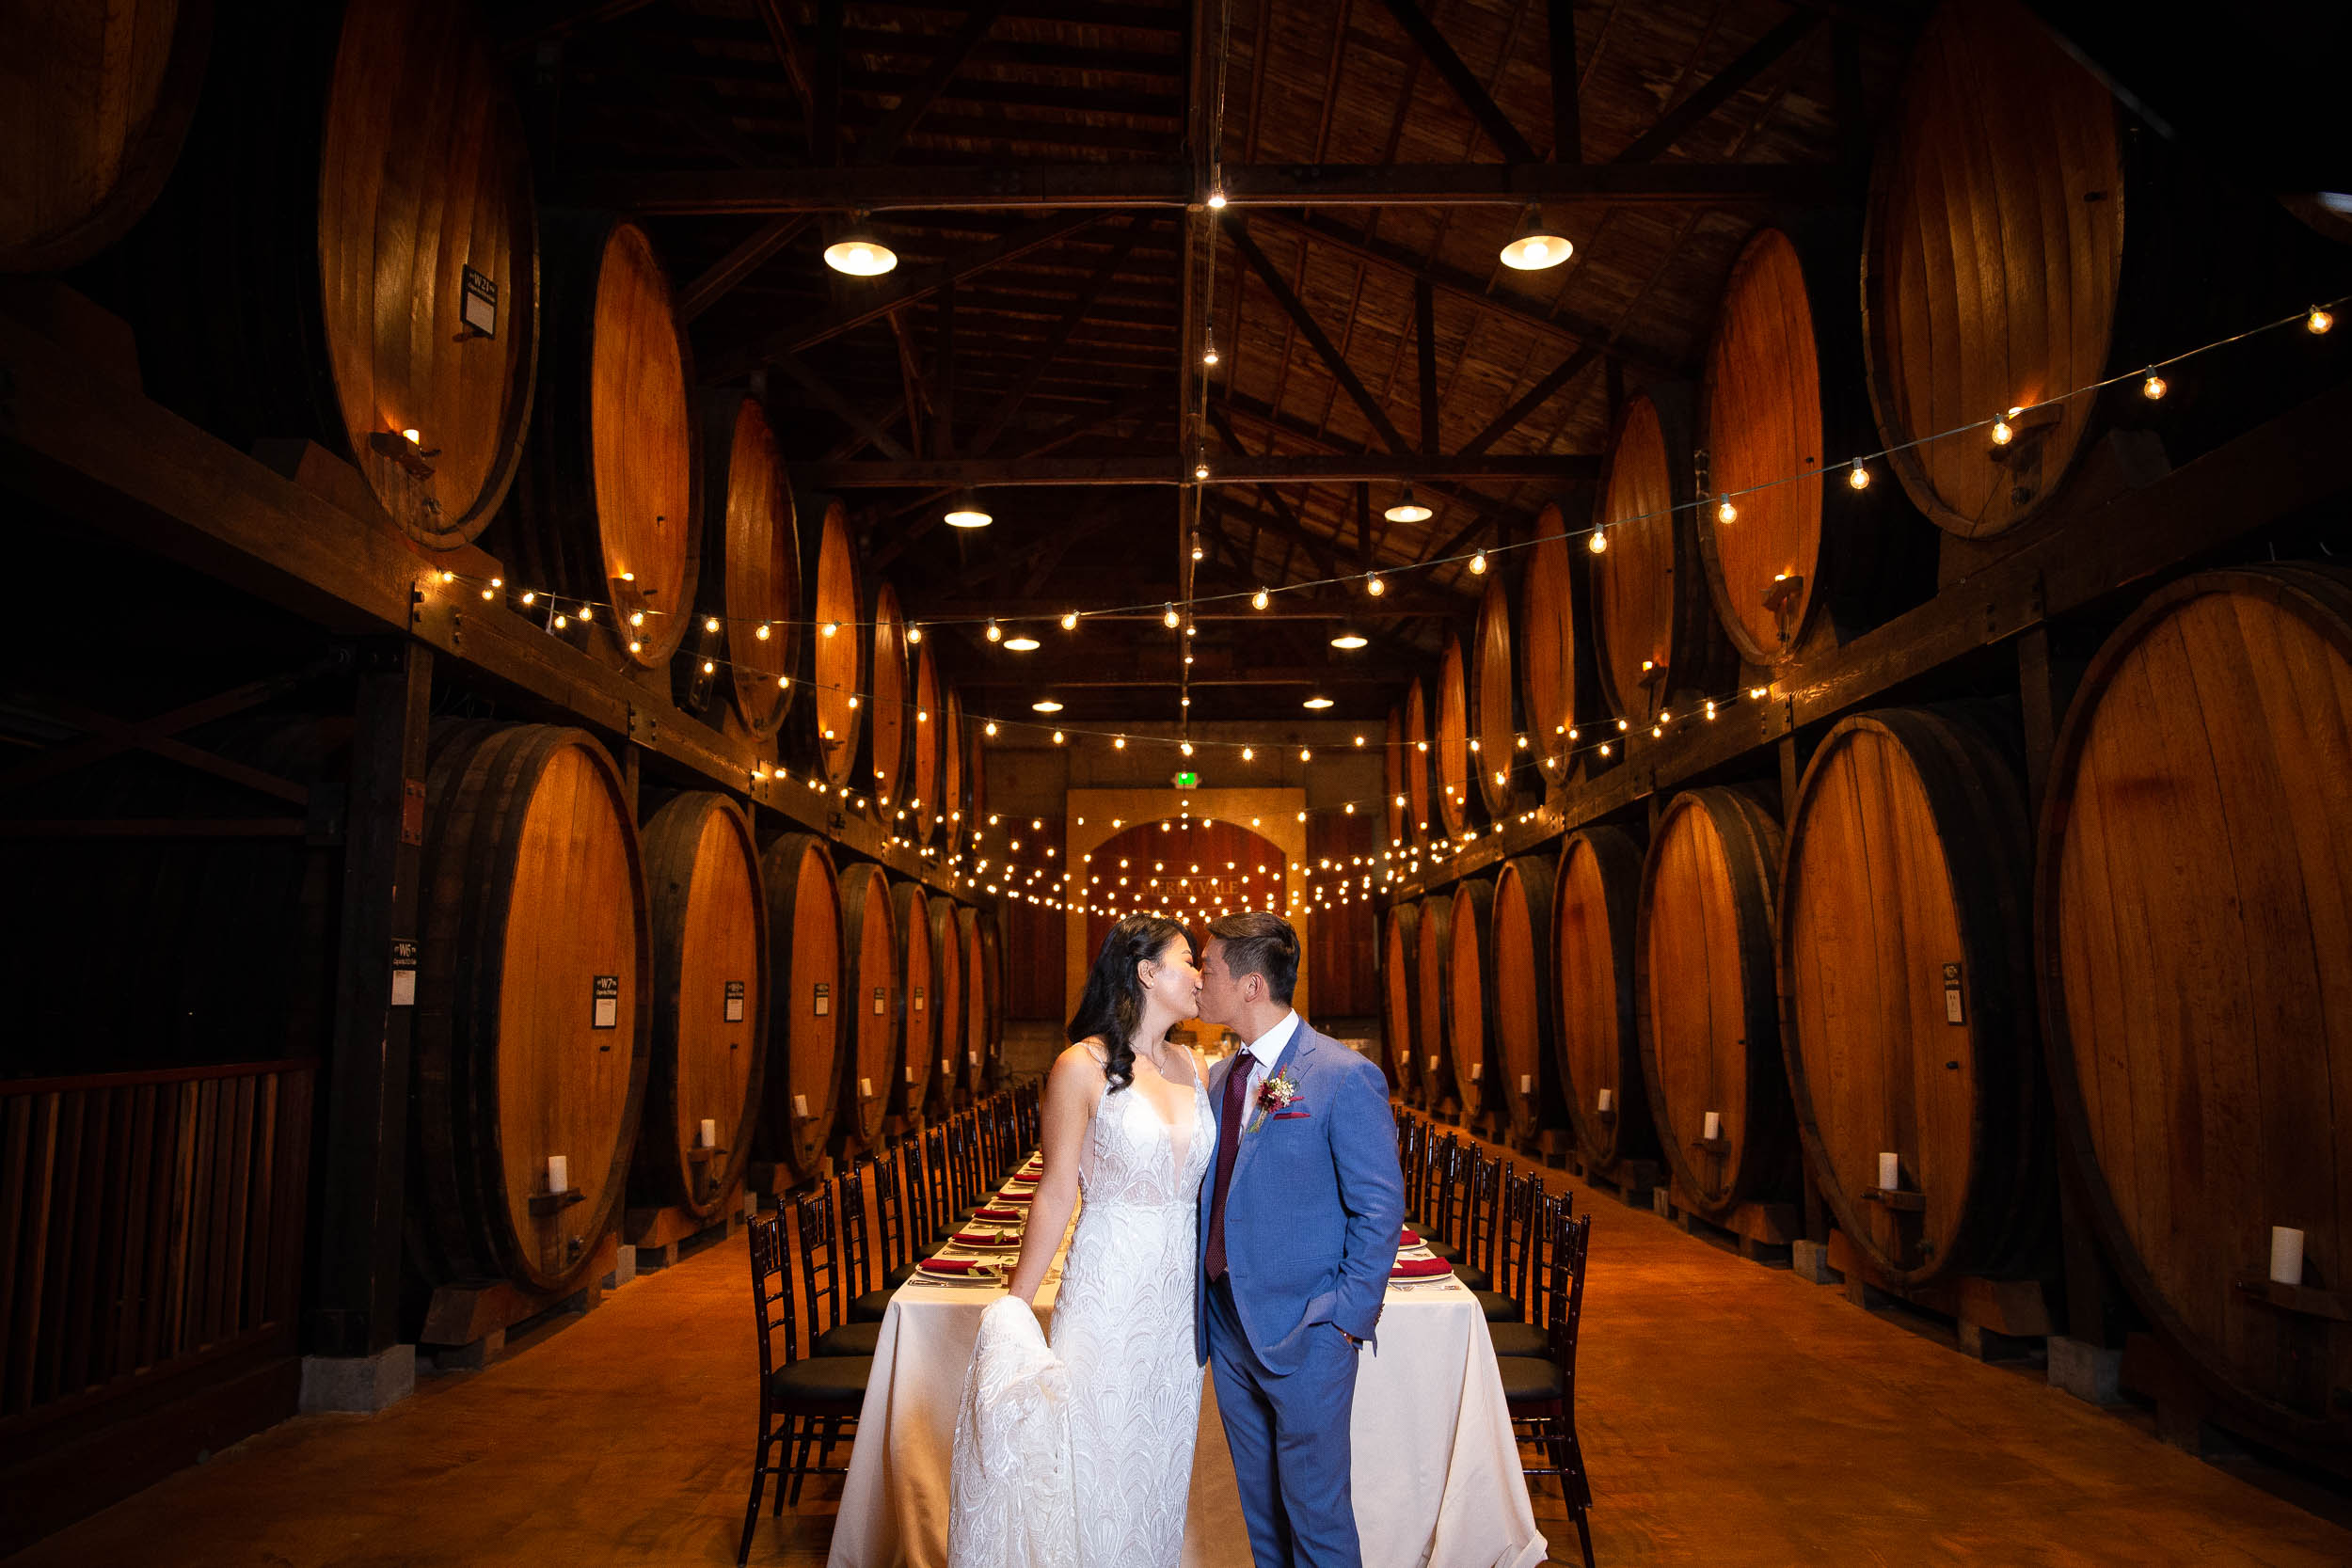 Merryvale Vineyards Wedding-26.jpg